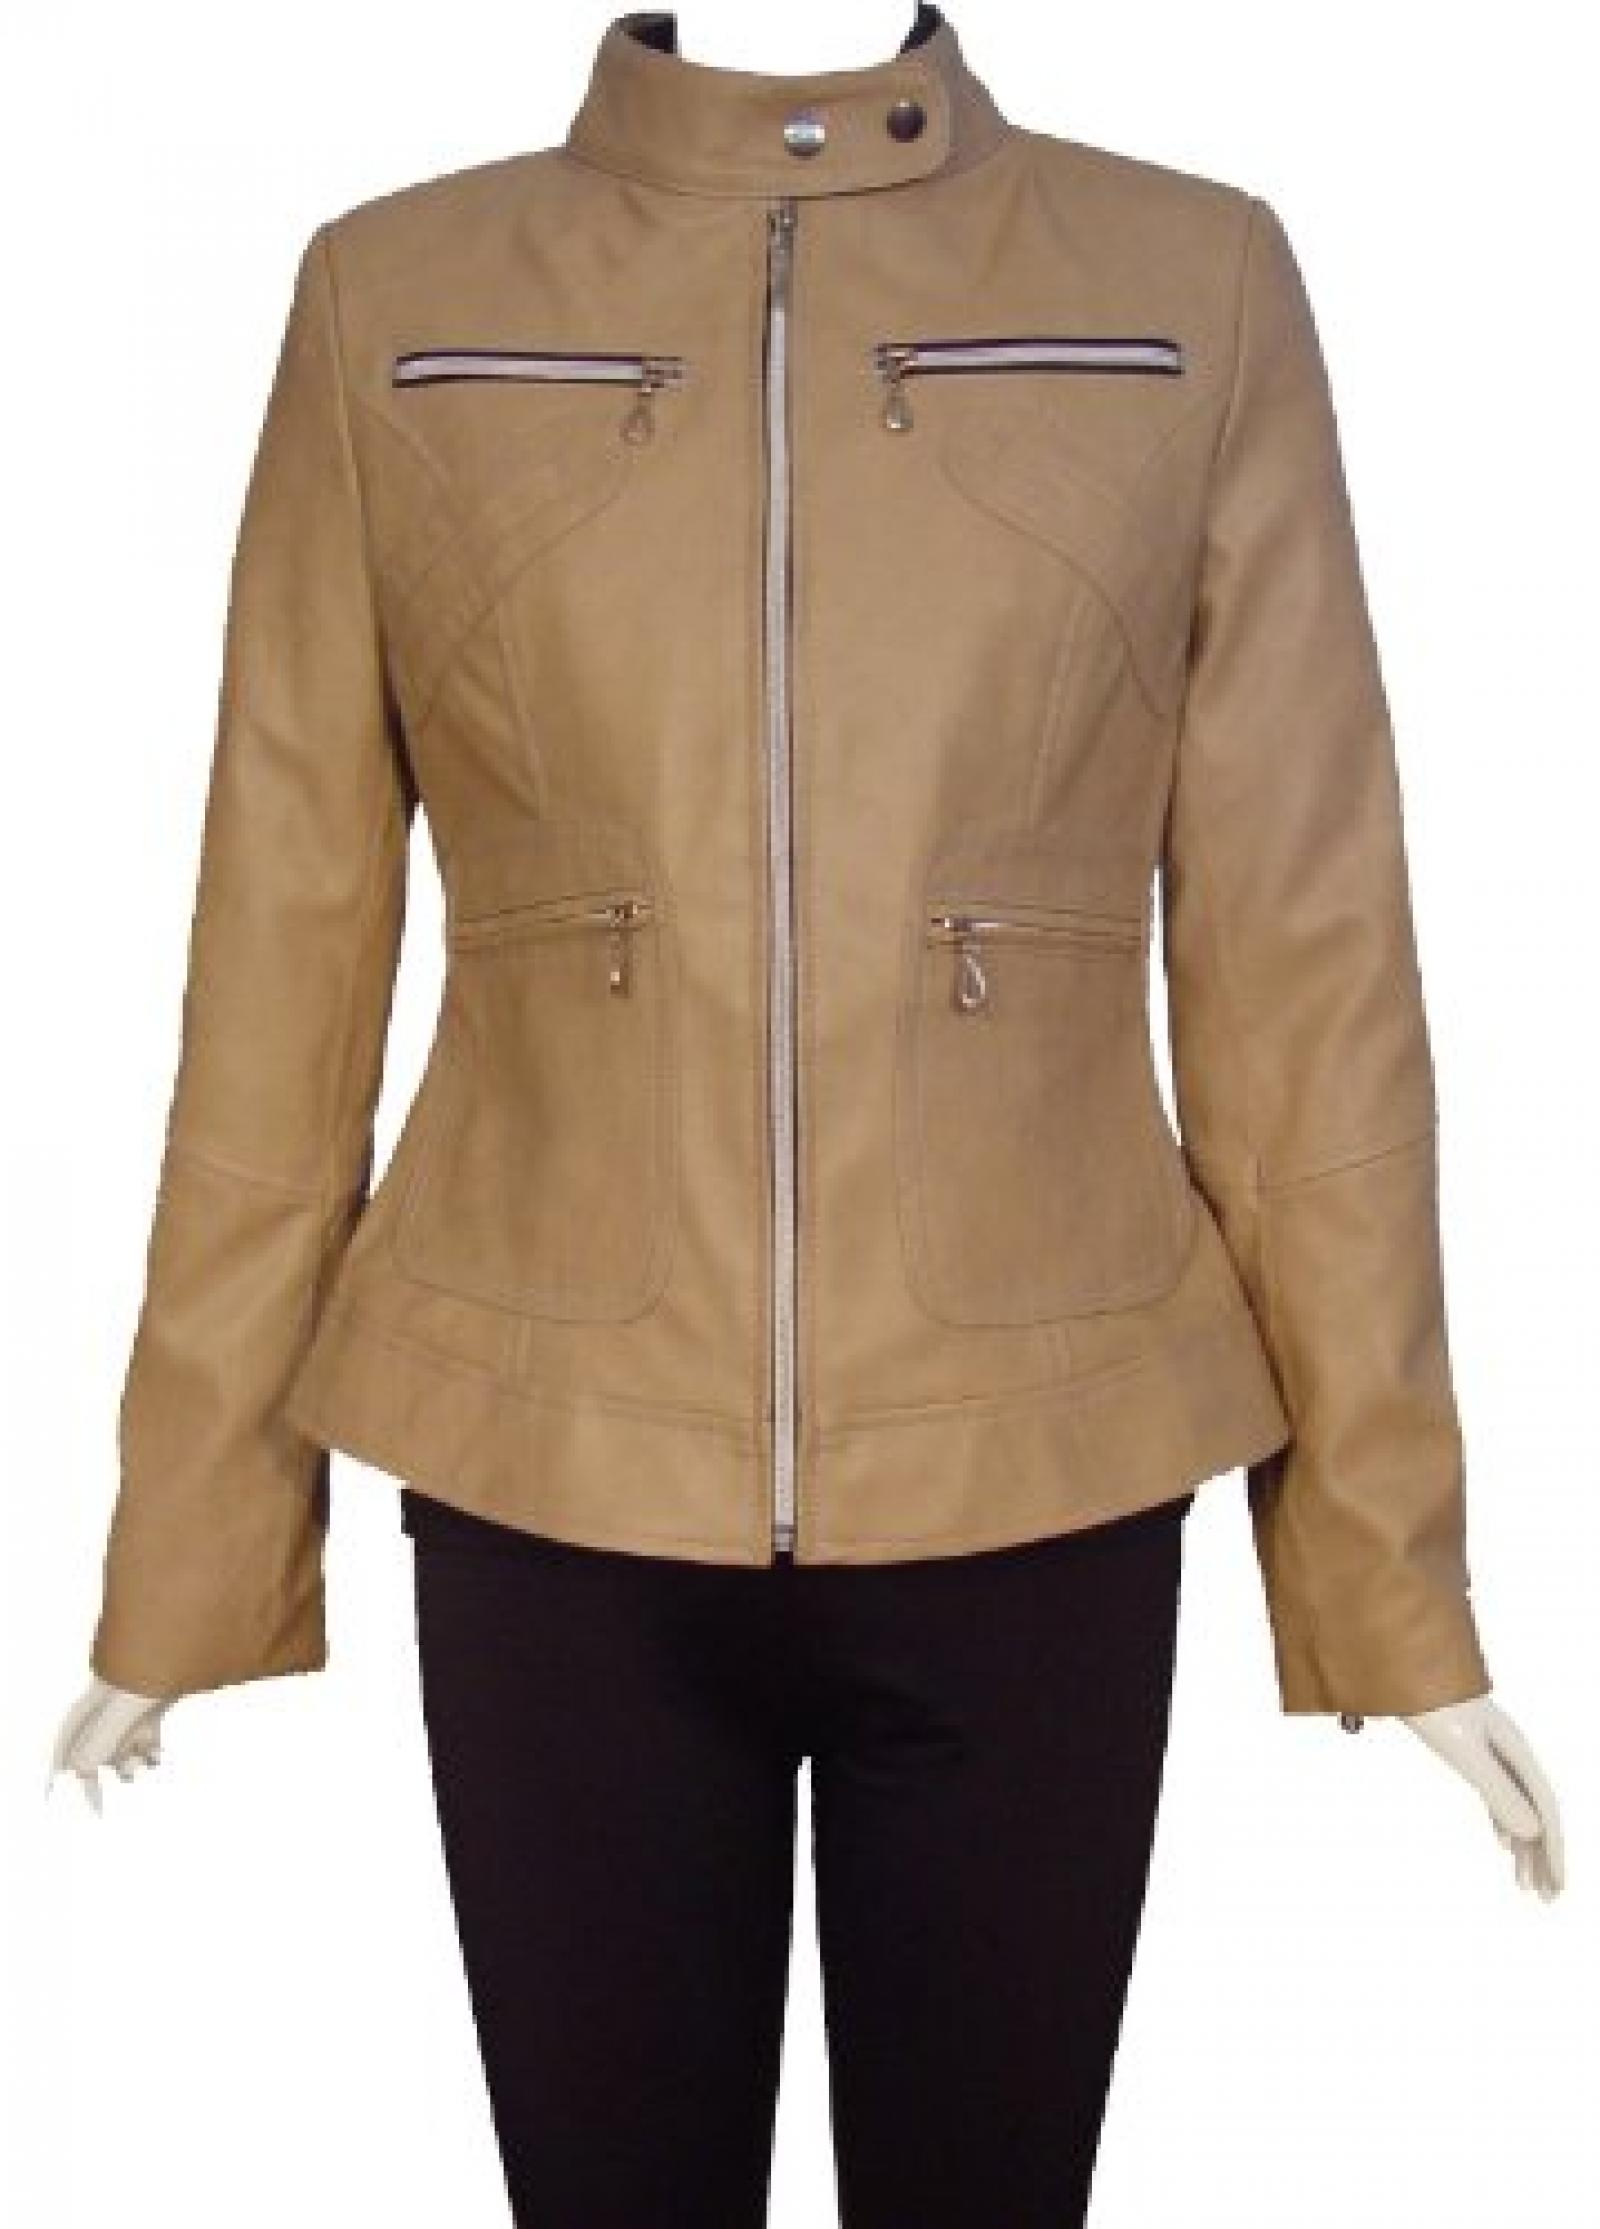 Nettailor Women PETITE SZ 4073 Lamb Leather Motorcycle Jacket